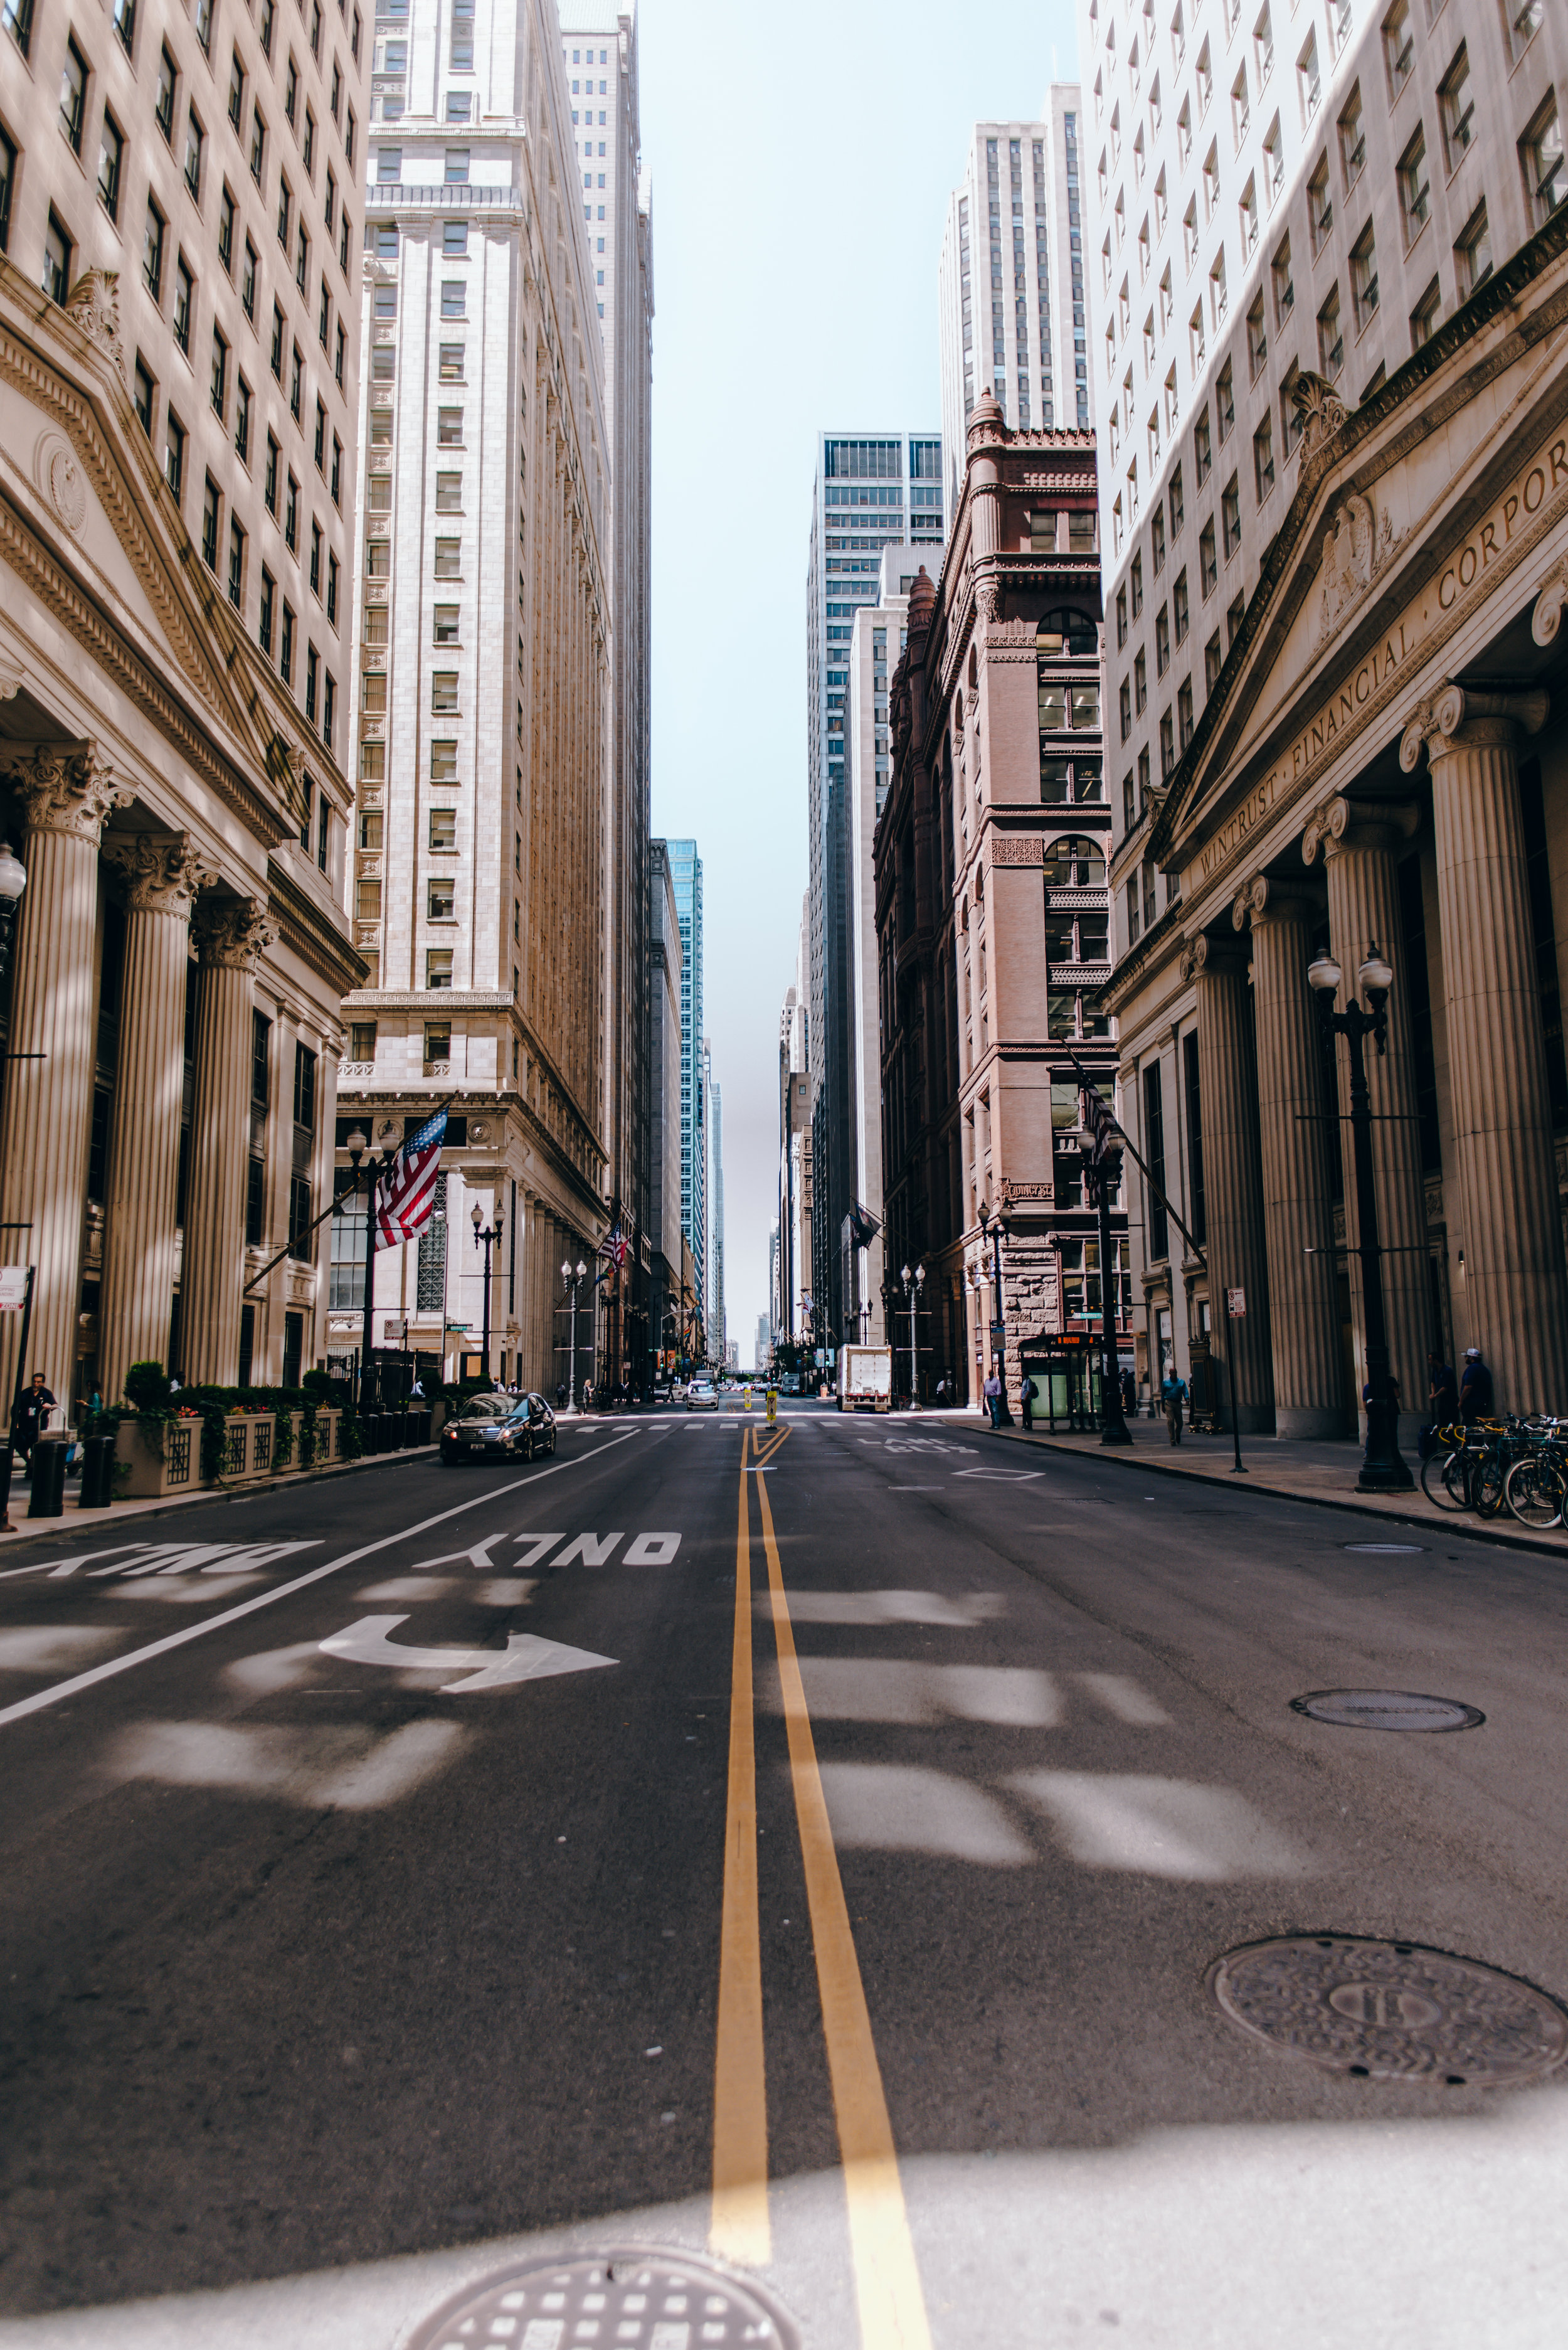 allegro-chicago-by-lisa-linh